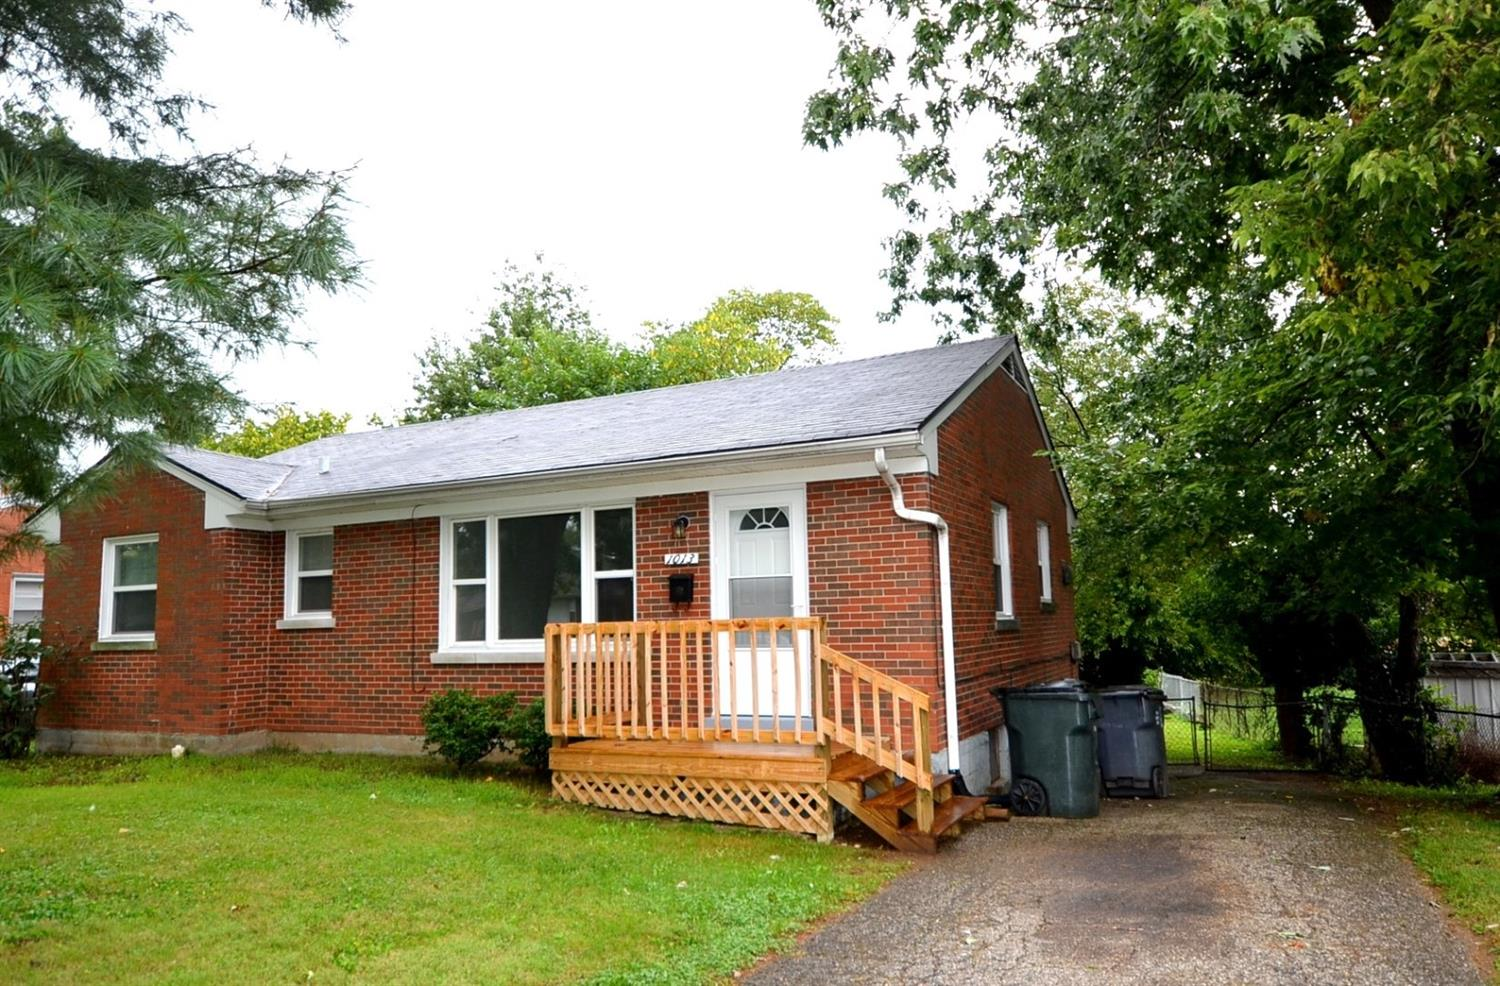 Completely%20remodeled,%20replacement%20windows,%20replaced%20roof,%20fenced%20yard,%20living/dining%20combination,%20new%20kitchen%20cabinets%20&%20flooring,%20full%20basement%20with%20concrete%20floor%20plus%202%20extra%20rooms%20with%20paneling.%20%20All%20appliances%20included%20but%20not%20warranted.